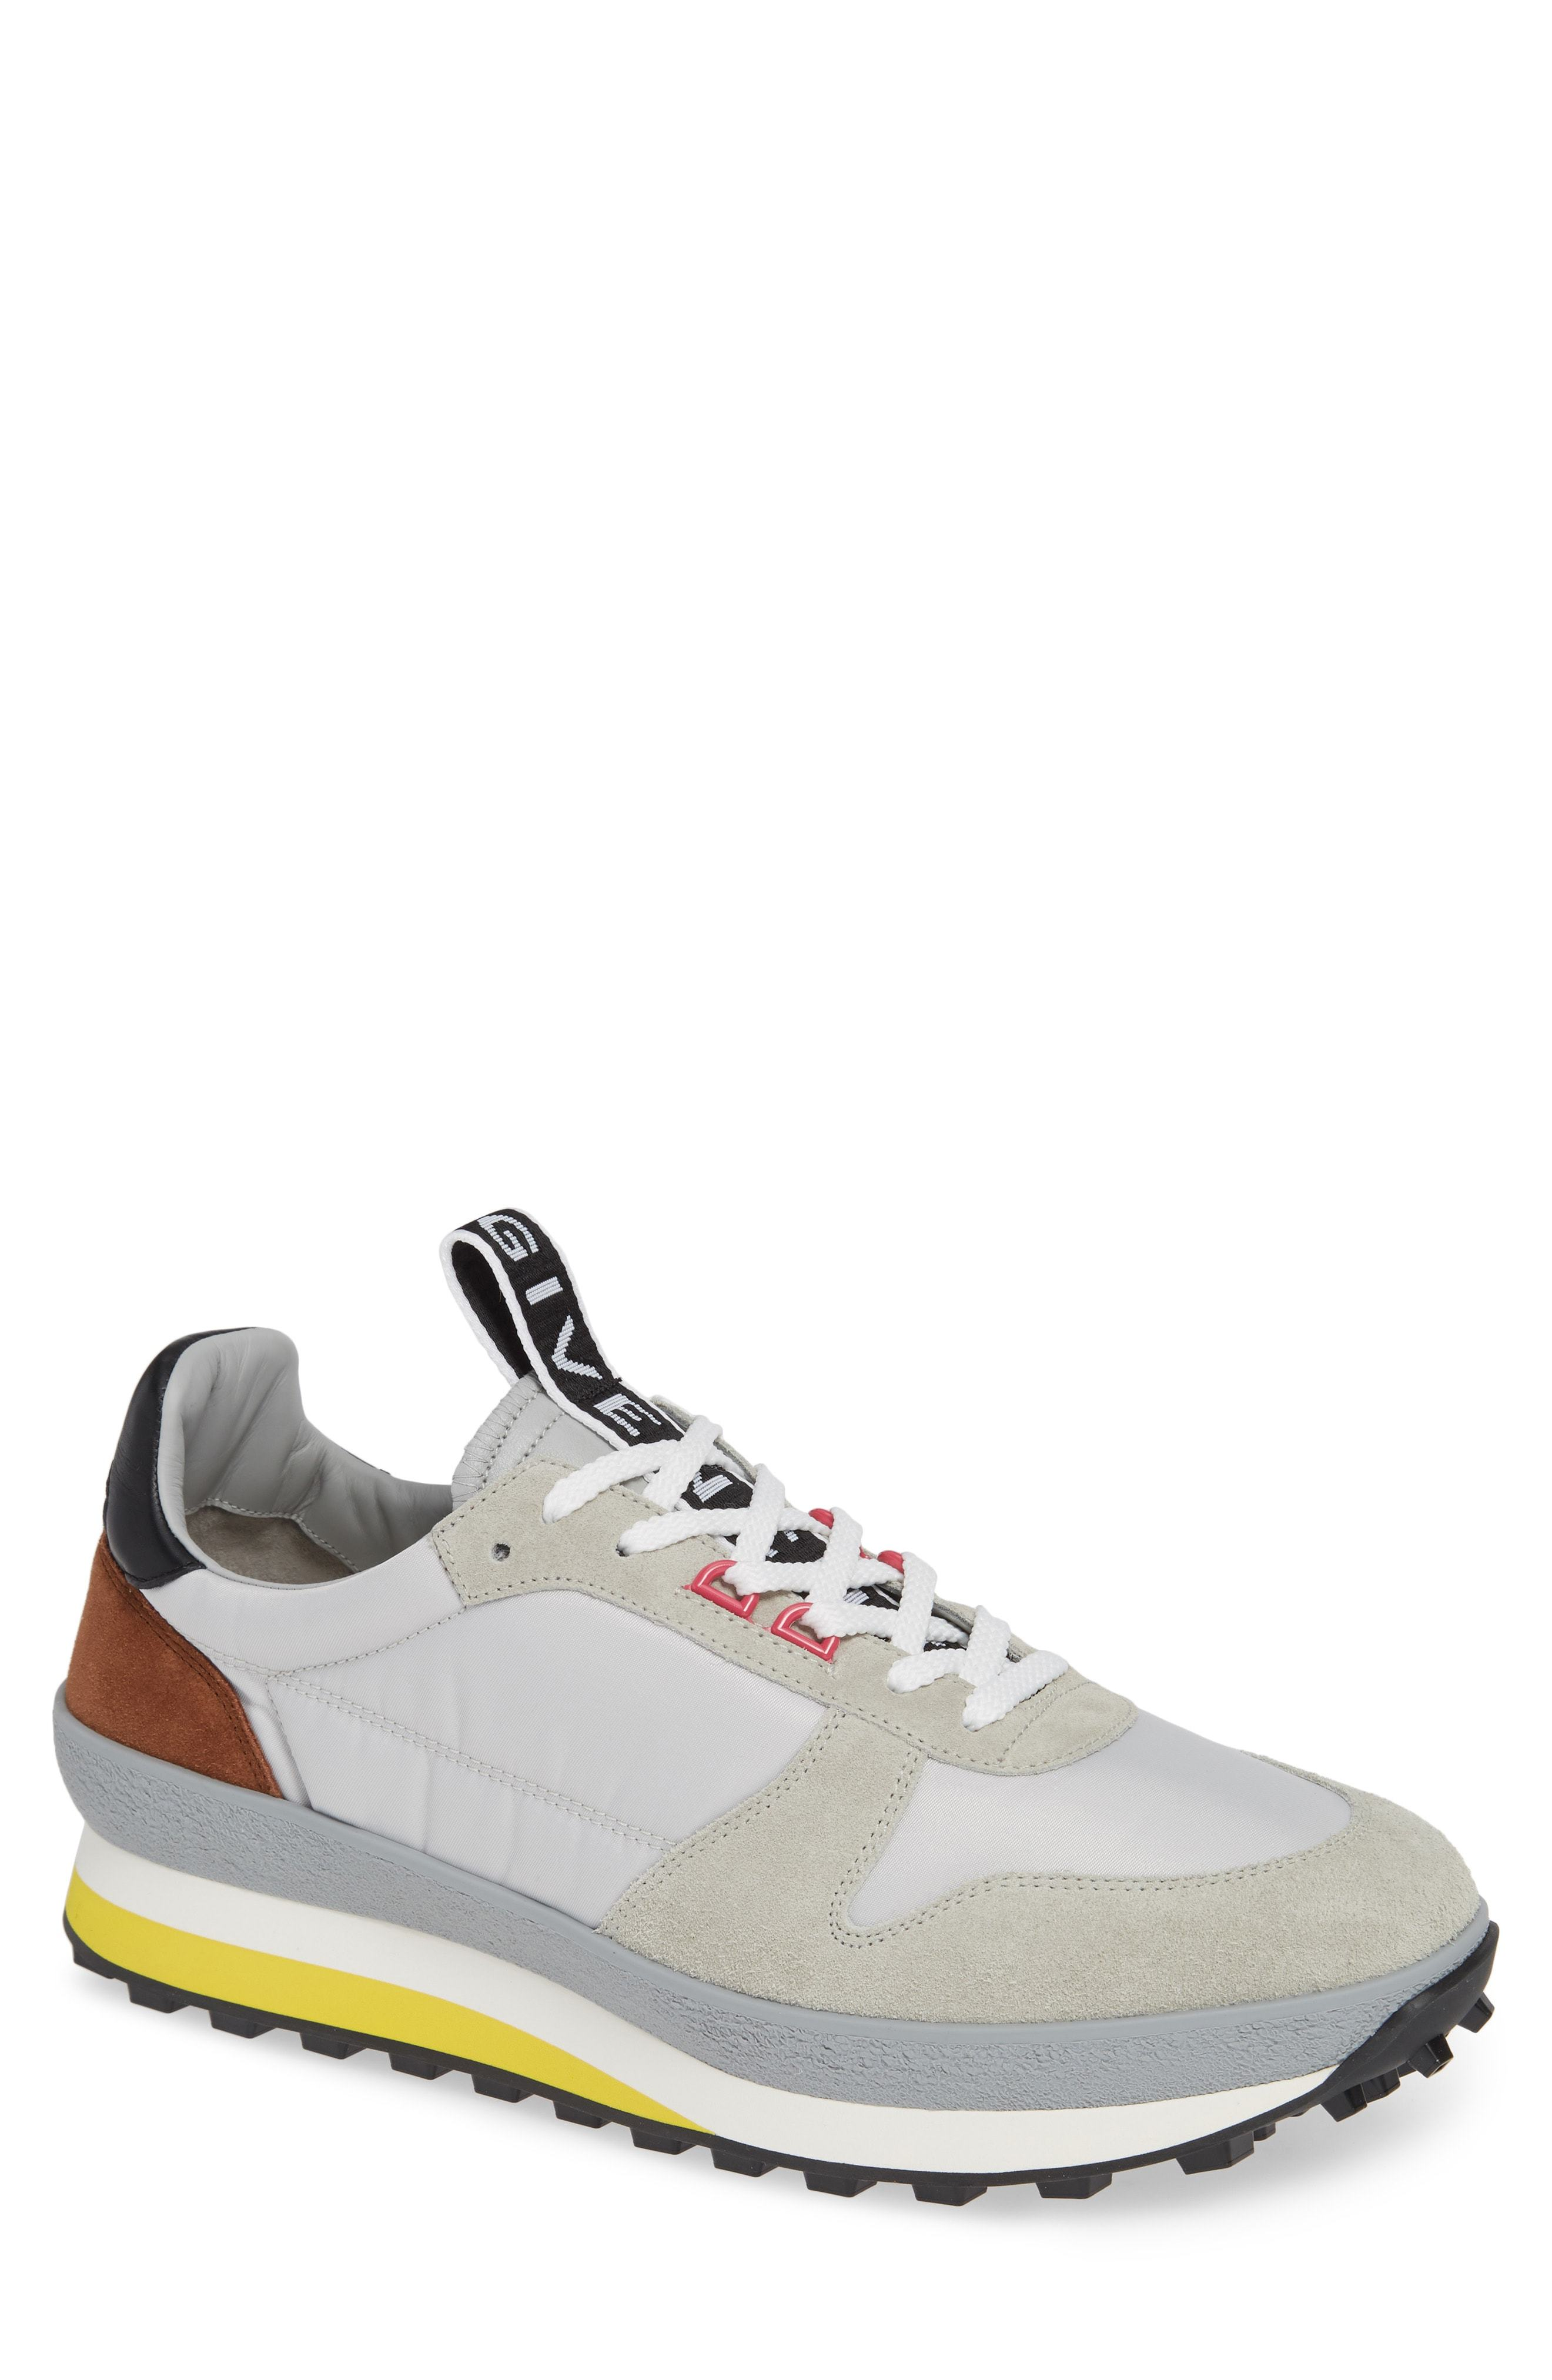 Givenchy Tr3 Low Runner Sneaker, $389